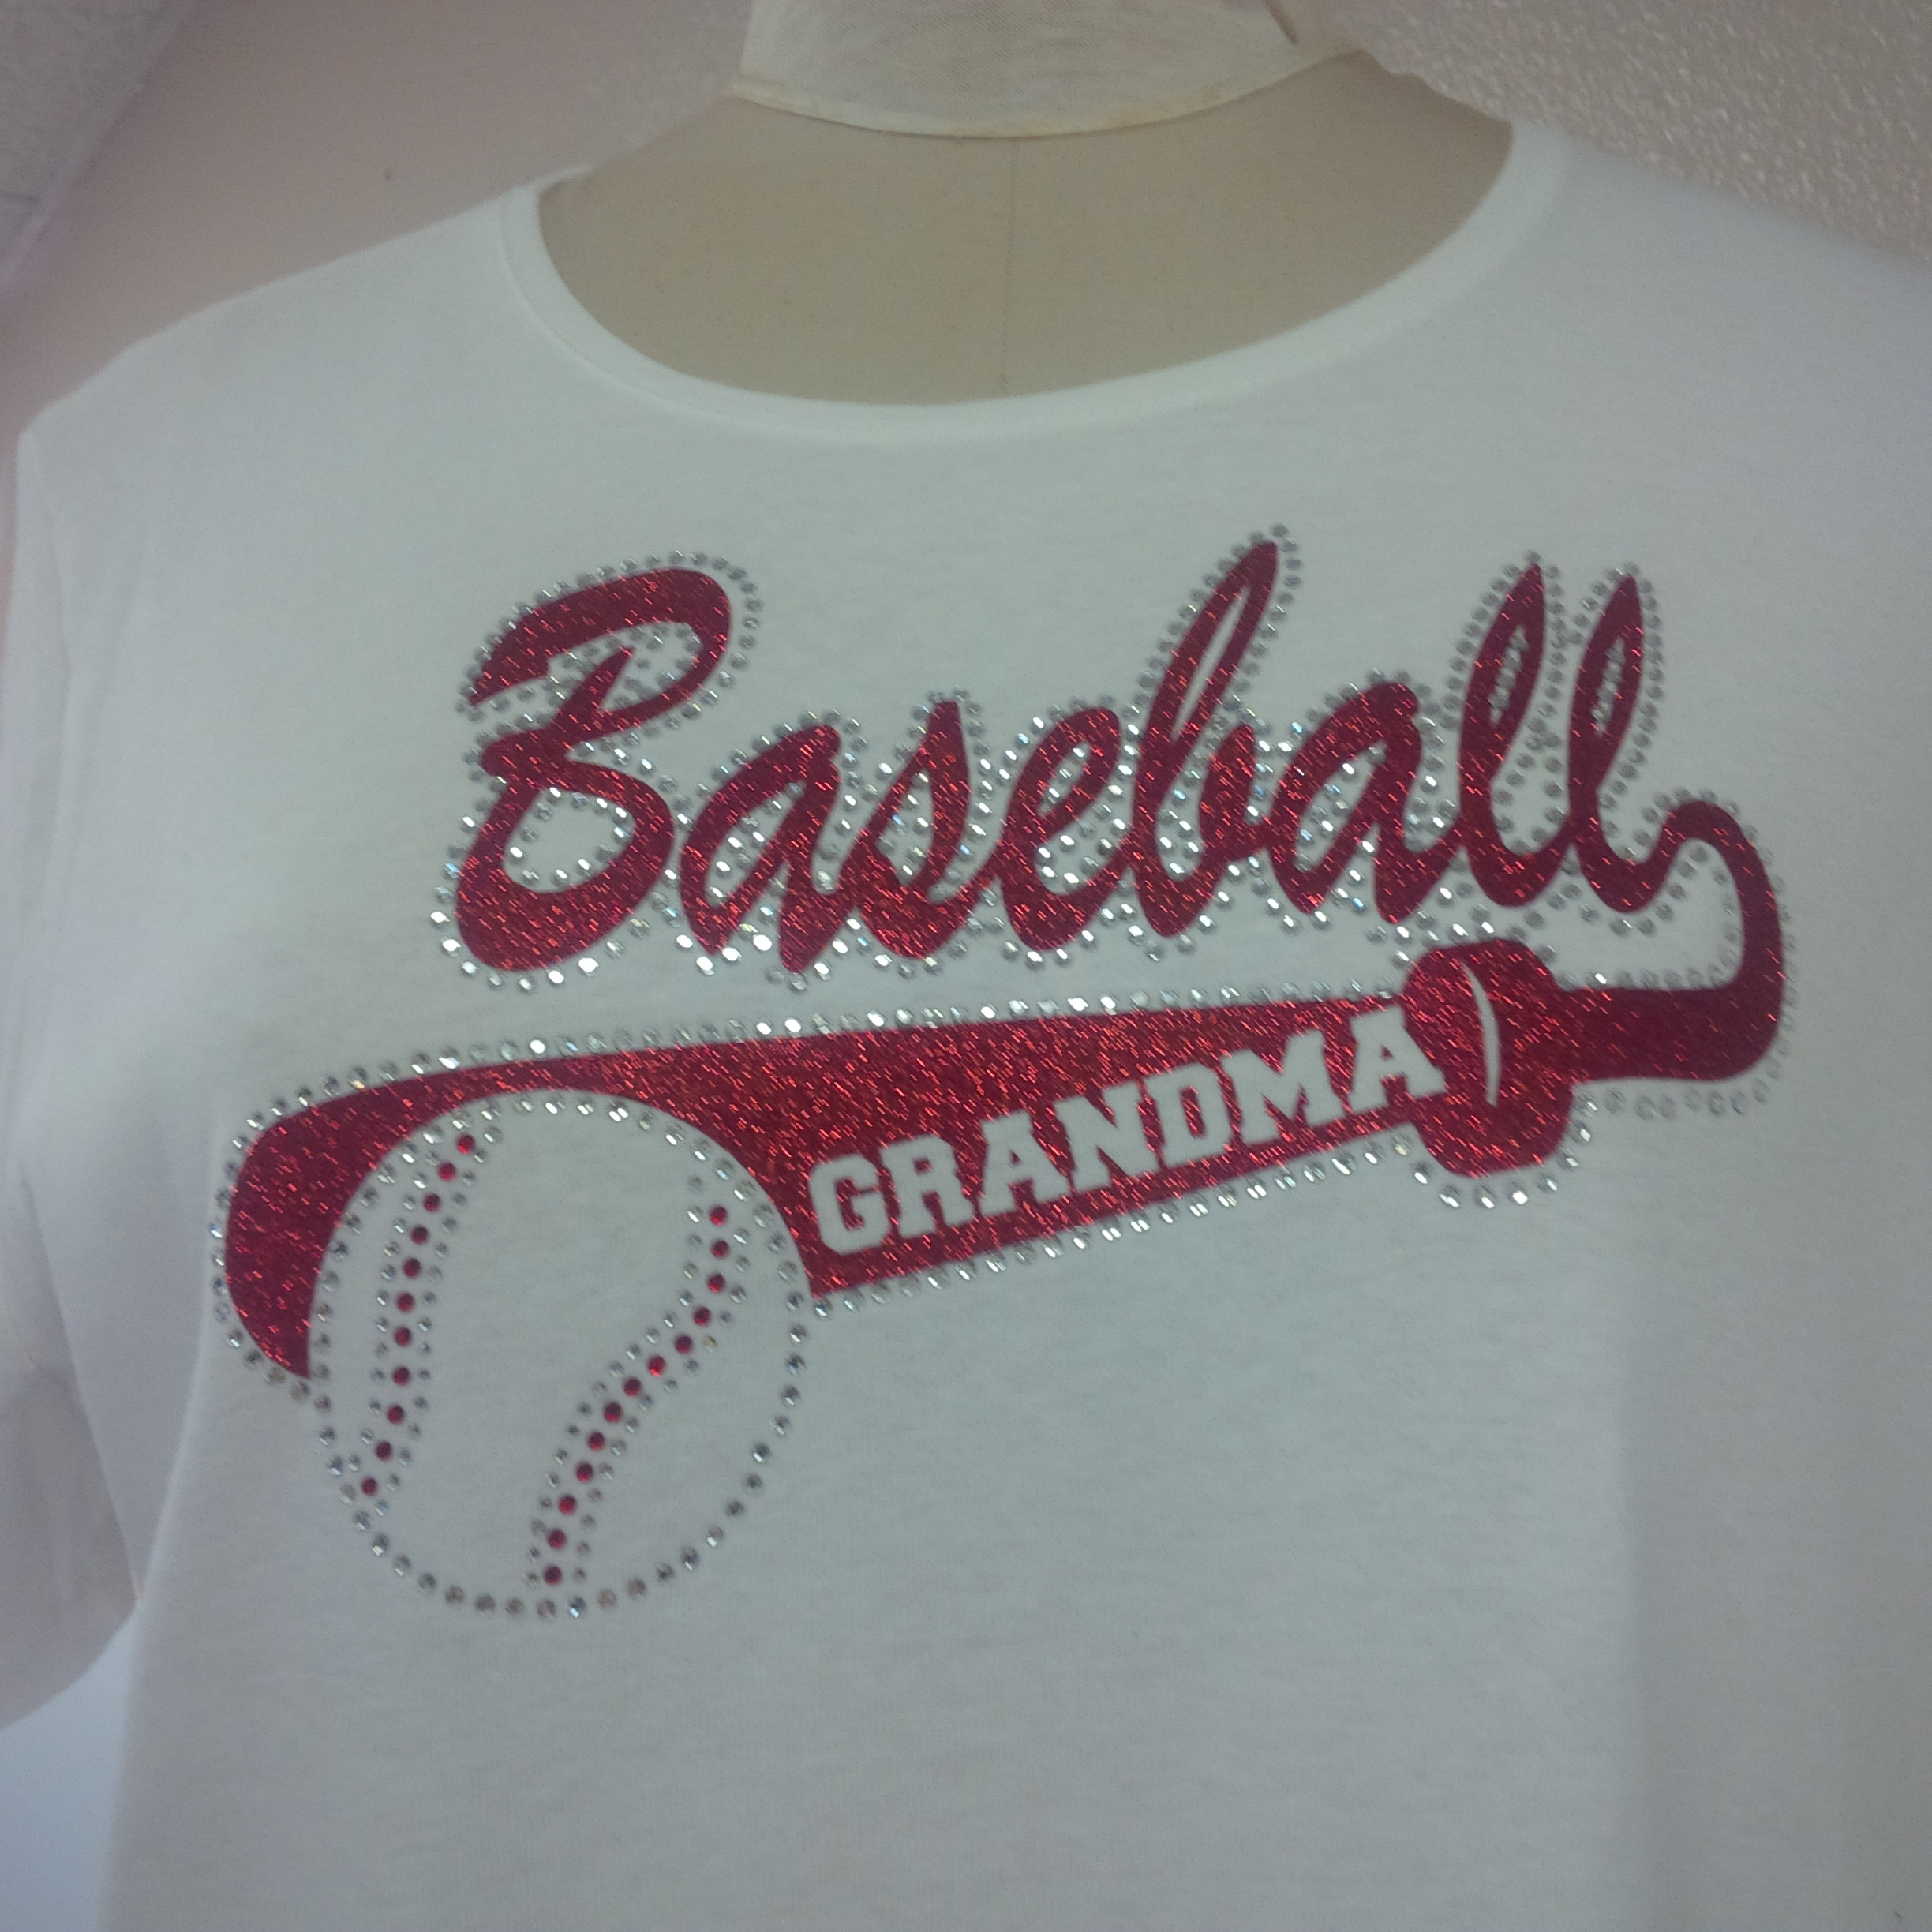 740bab7d6 Baseball Grandma Glitter and Stones Shirt · One Stop T-Shirts and ...